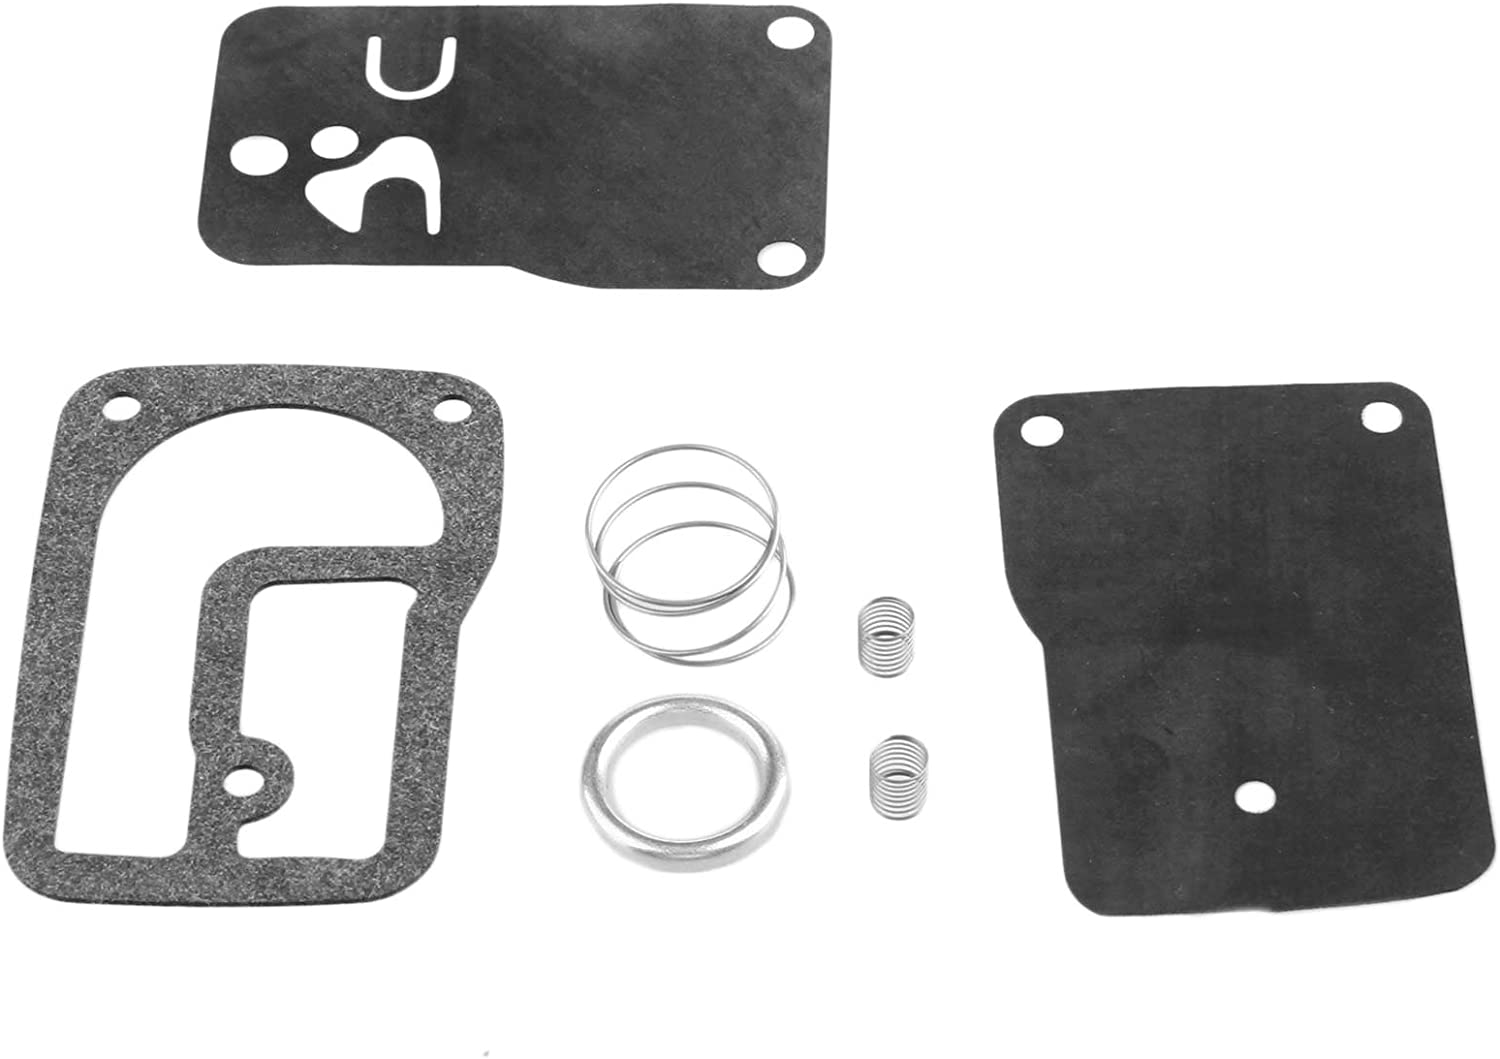 Mtsooning 520-106 Fuel Pump Kit Replaces Briggs and Stratton 393397 Fits 253400-255400, 400400-422700 and 460700